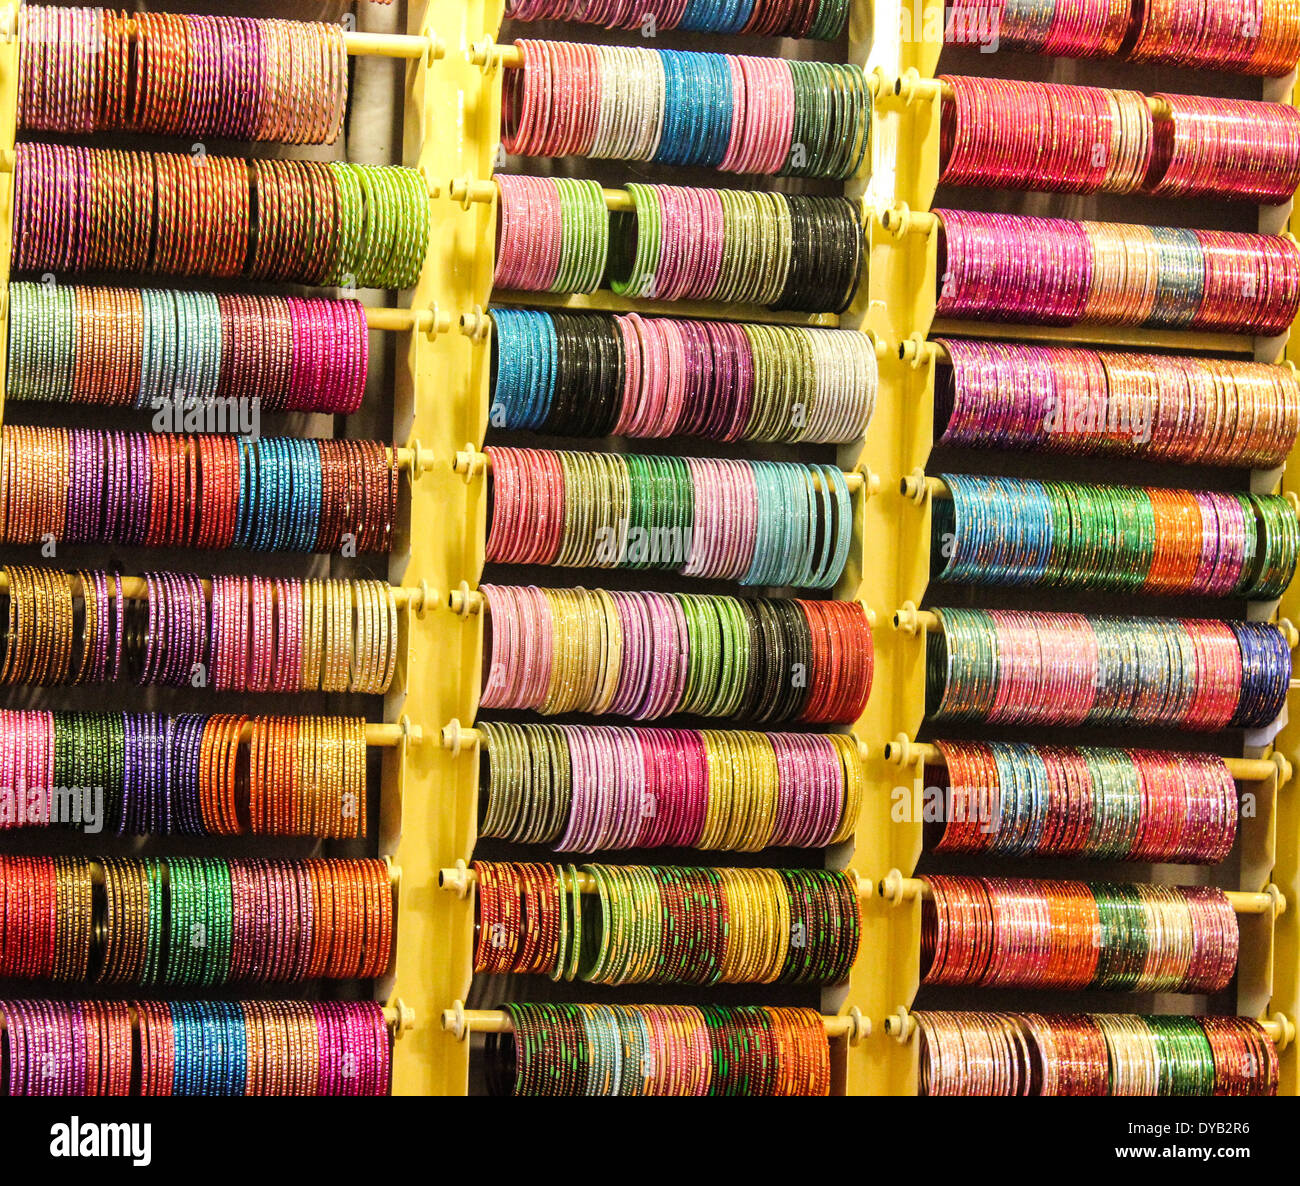 Array of Bangles Display - Stock Image